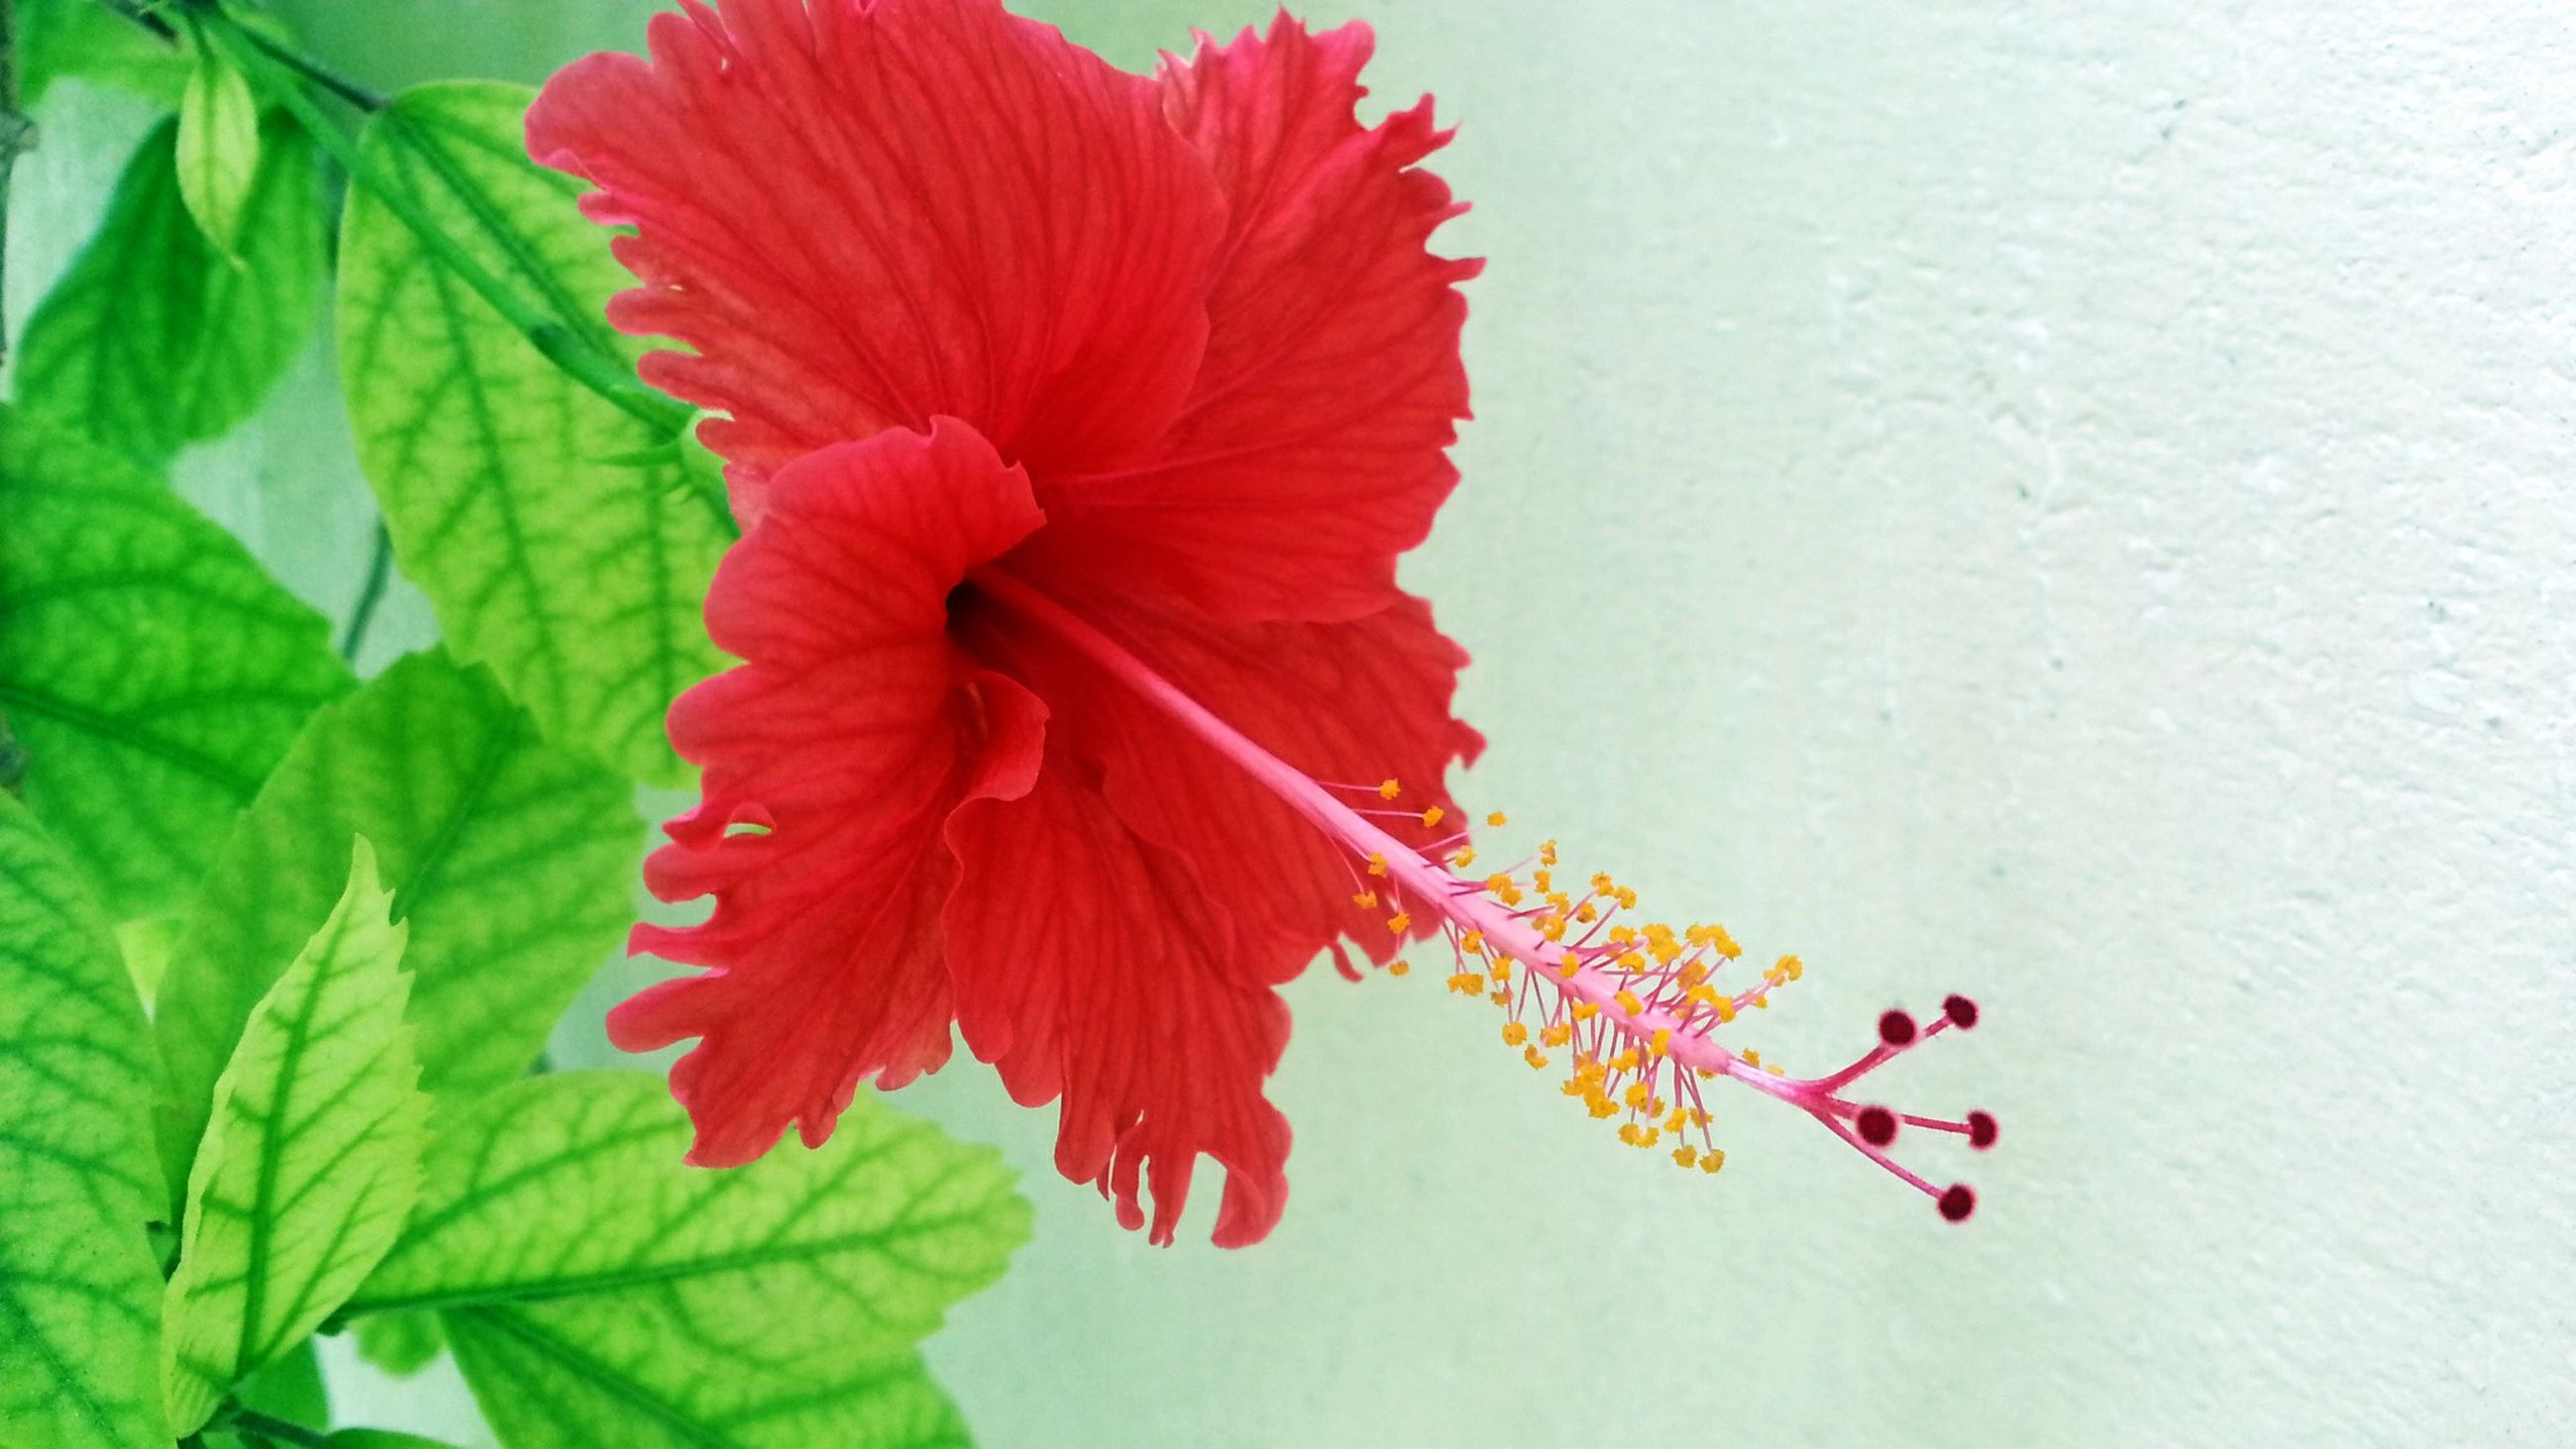 flower, petal, freshness, flower head, fragility, growth, red, leaf, beauty in nature, plant, nature, close-up, blooming, in bloom, orange color, single flower, blossom, botany, stem, no people